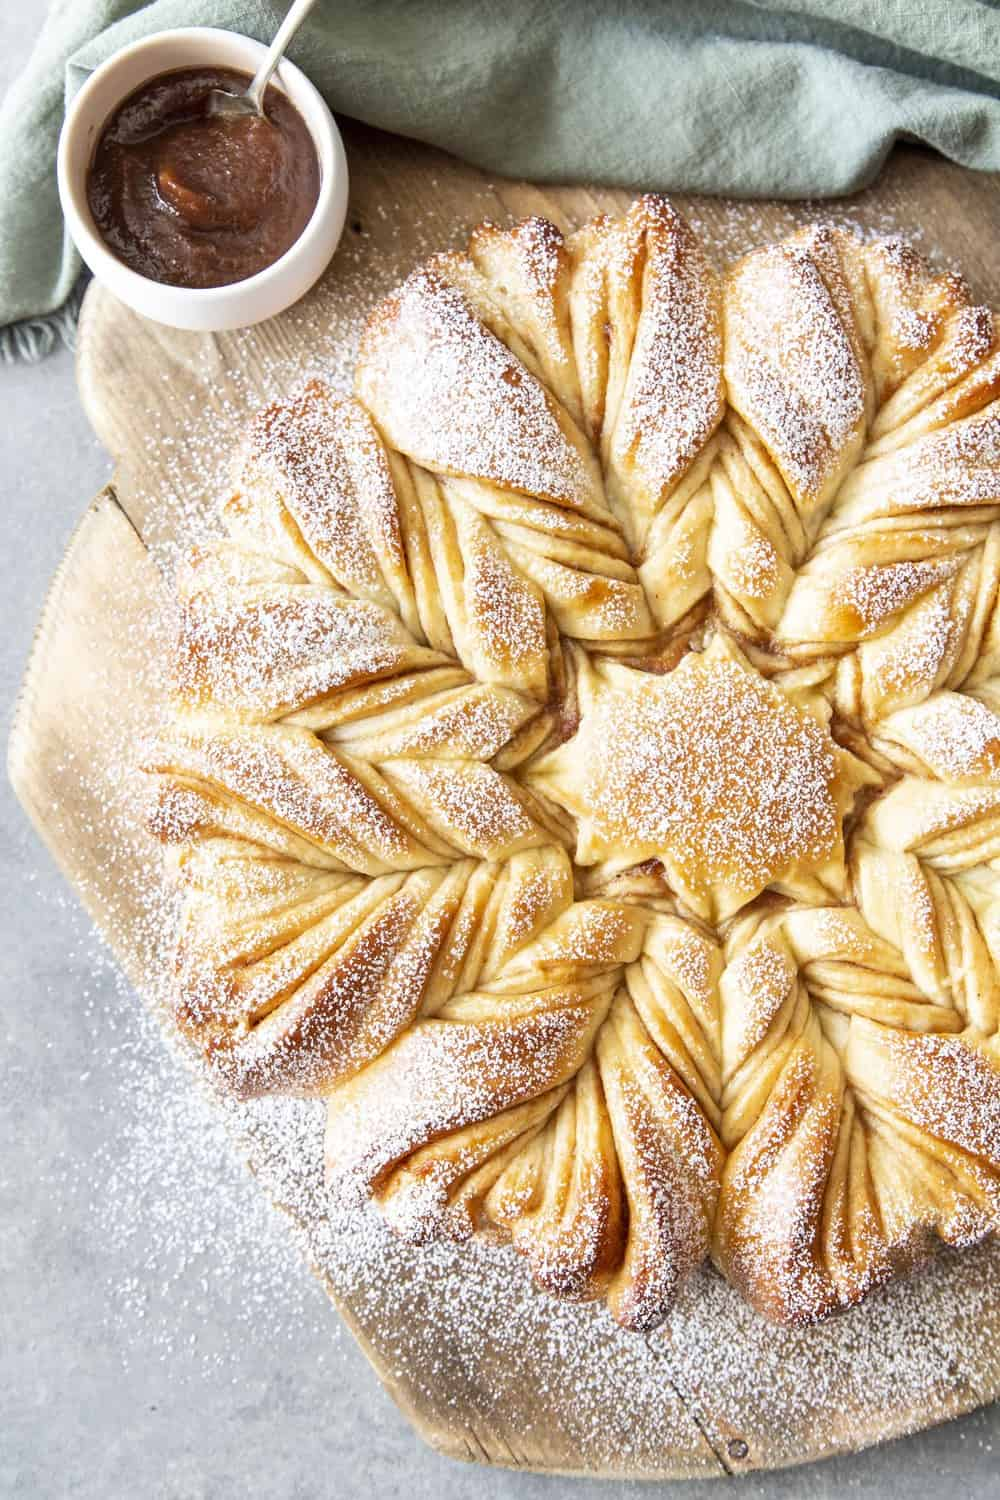 Dusted with powder sugar, star bread.